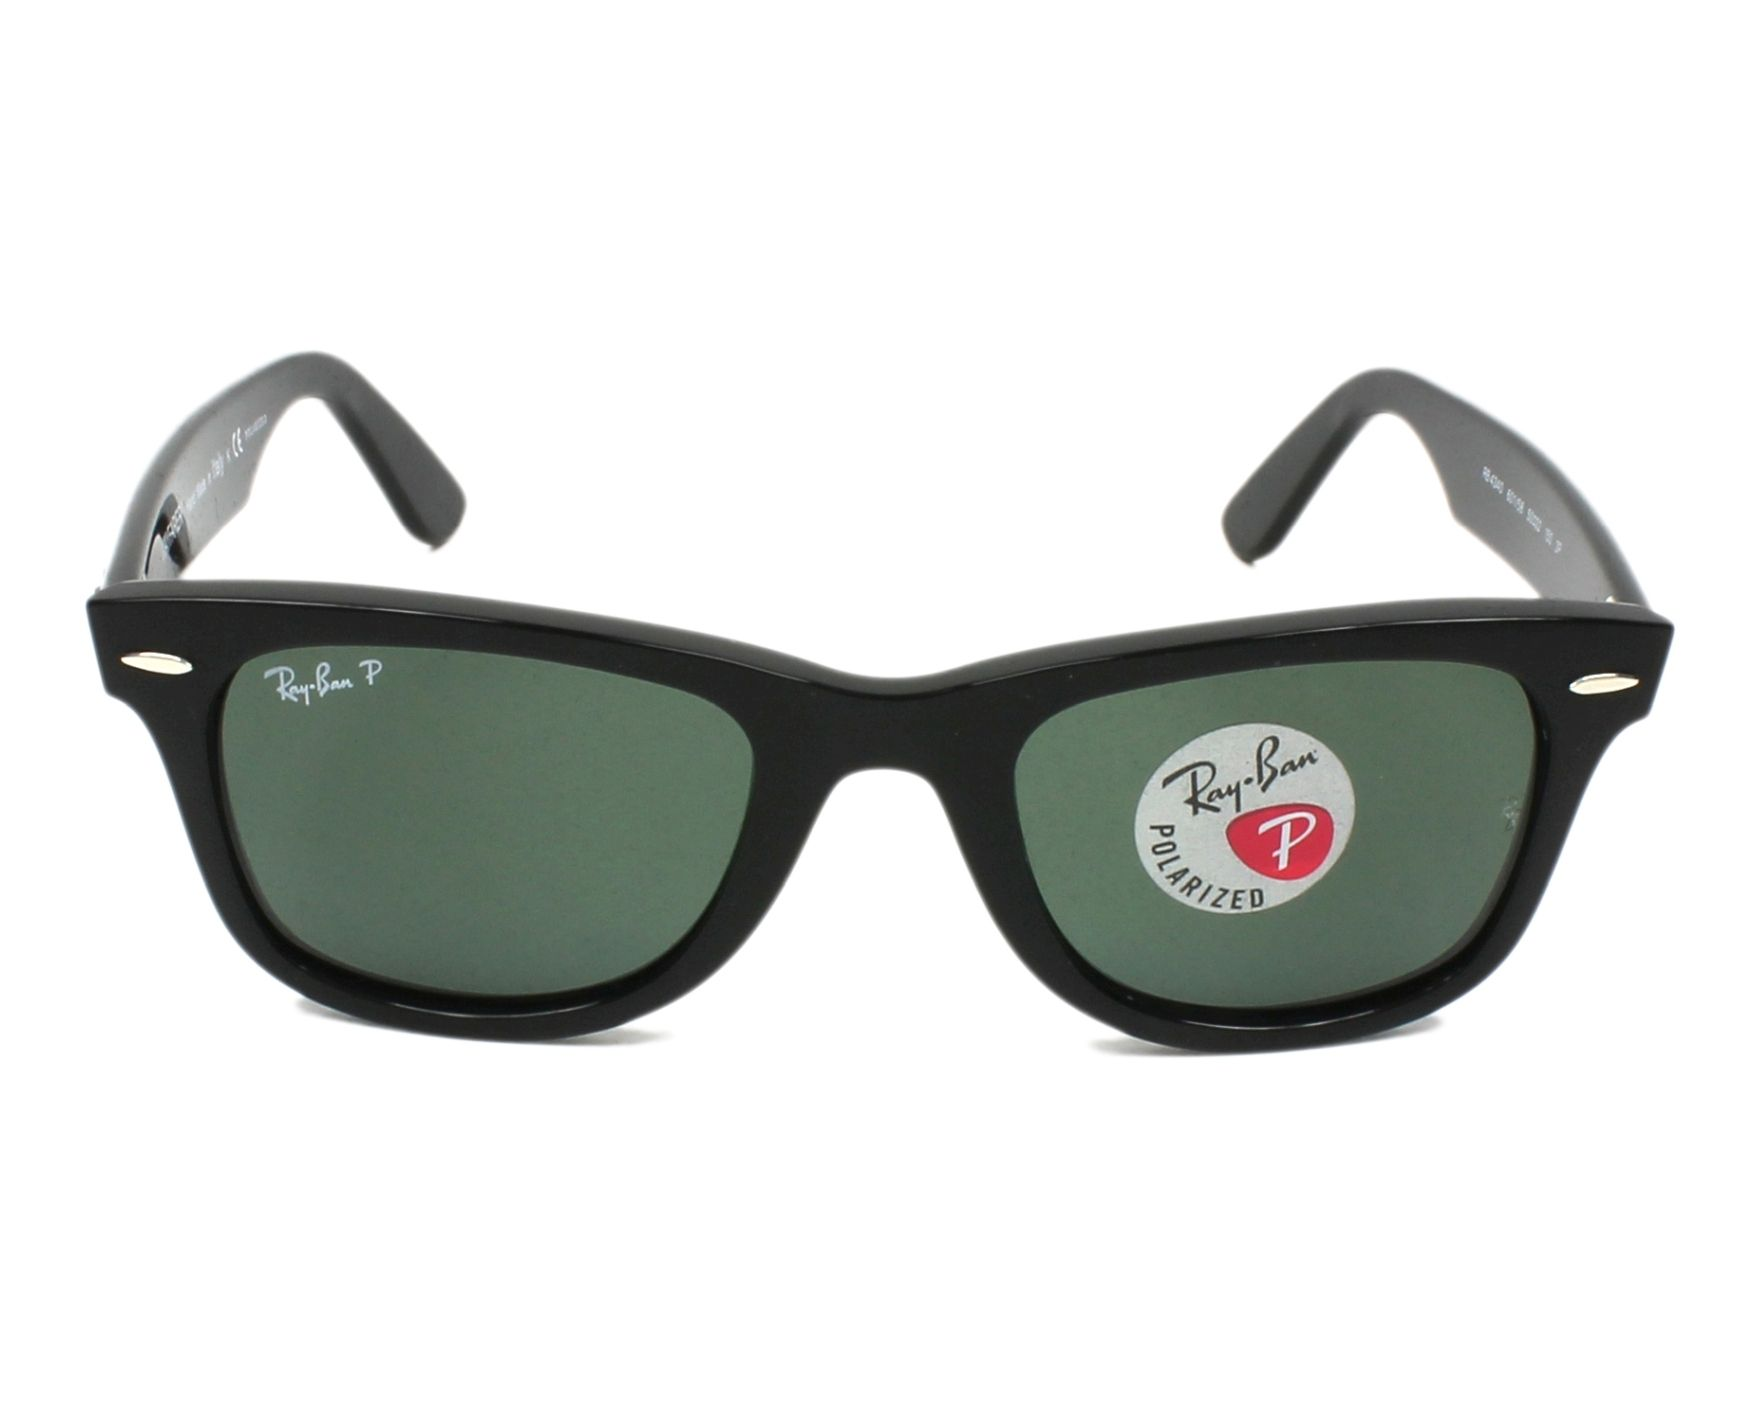 f91537935cf Sunglasses Ray-Ban RB-4340 601 58 50-22 Black front view